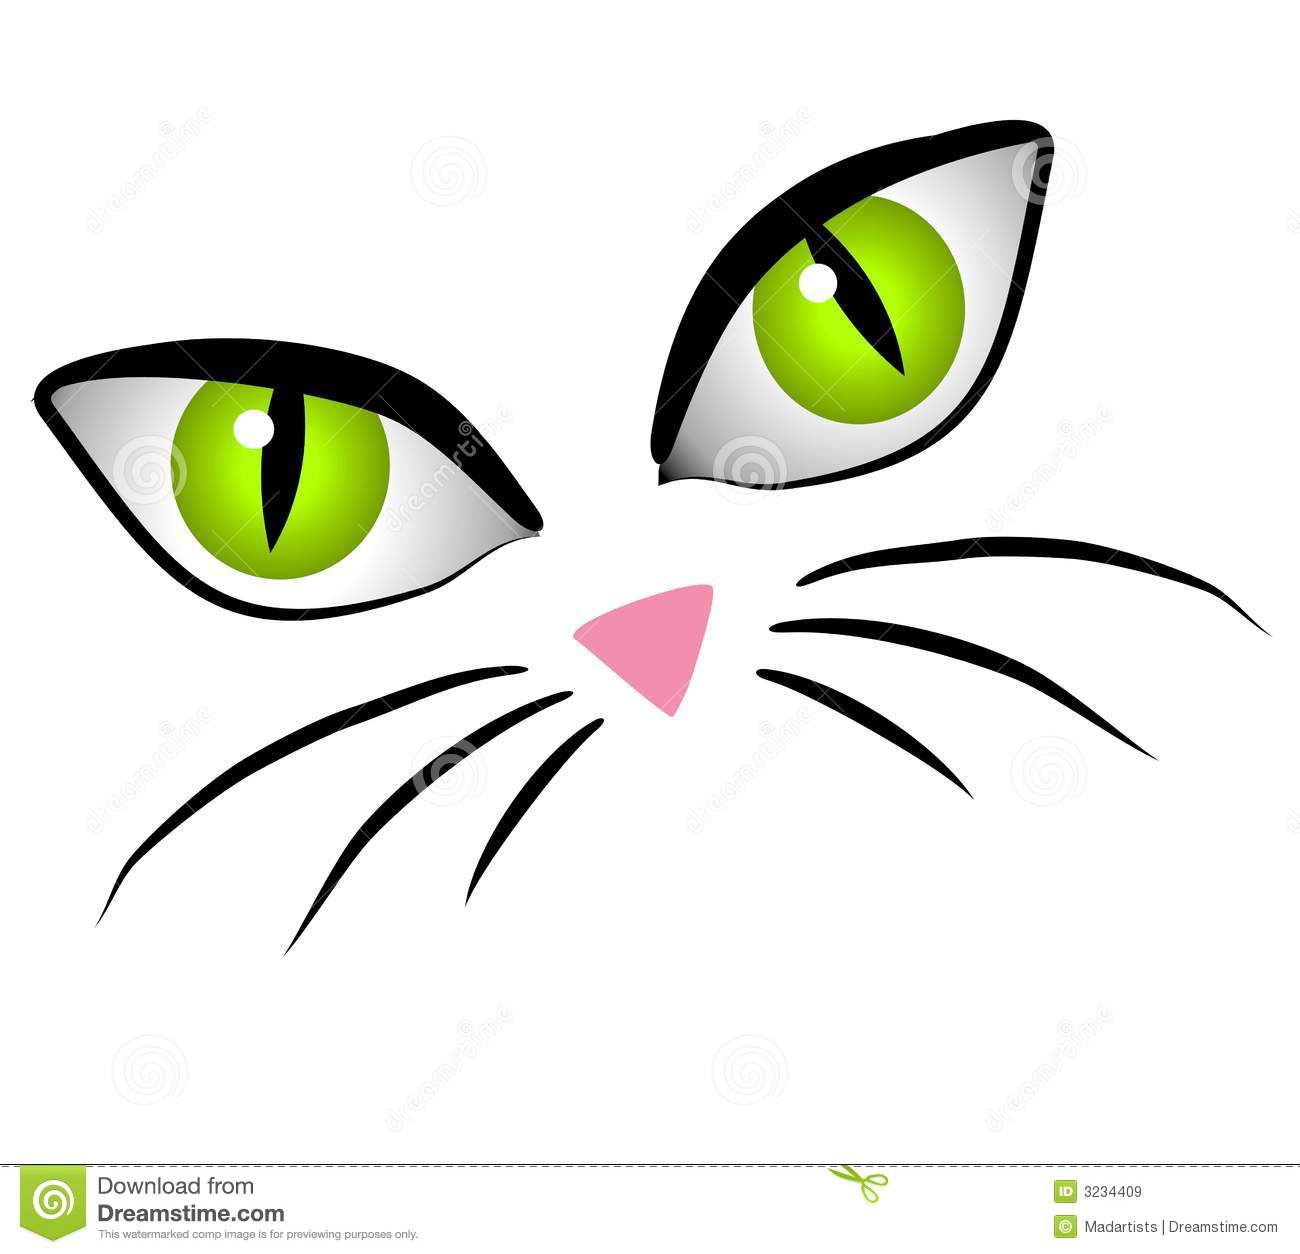 Clip Art Cartoon Illustration Of The Facial Features Of A Cat   Big